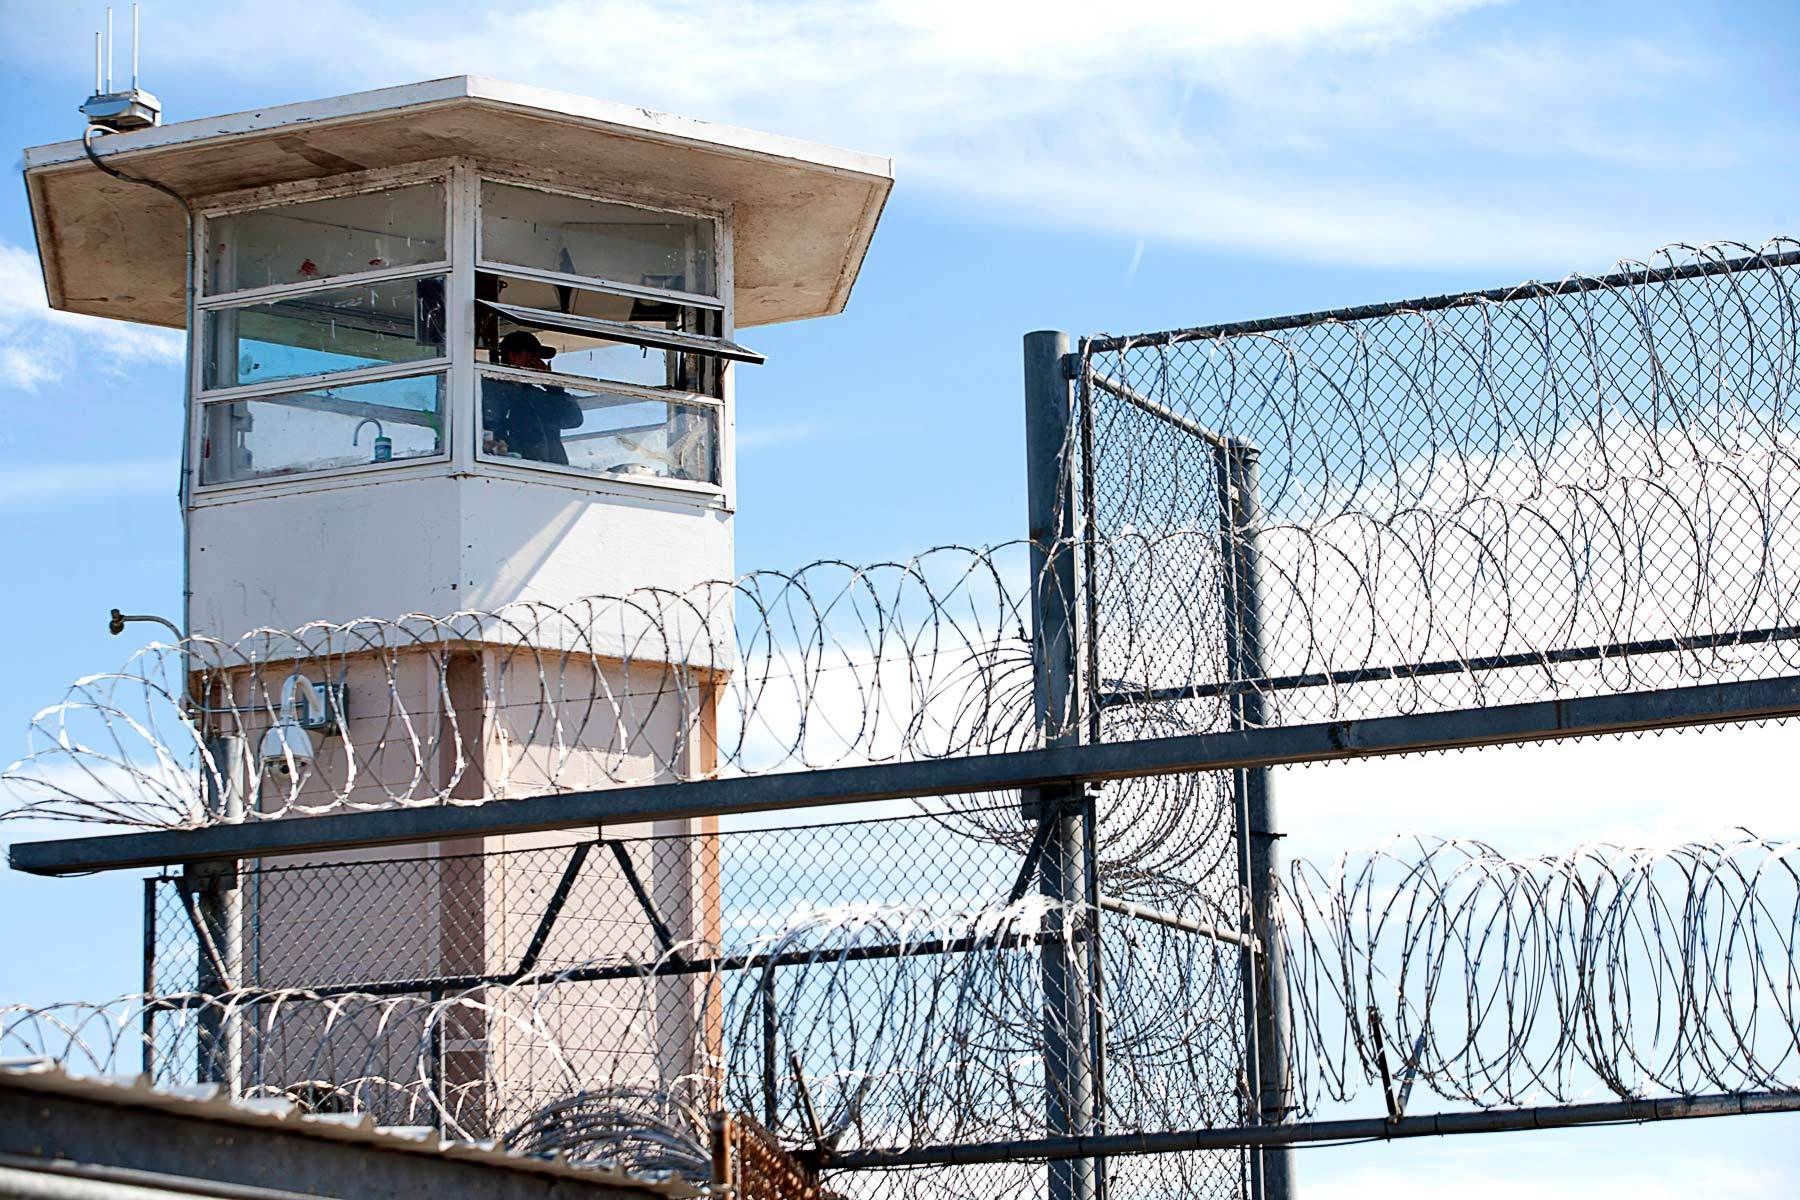 1angola_prison_rodeo_convicts_tower.jpg